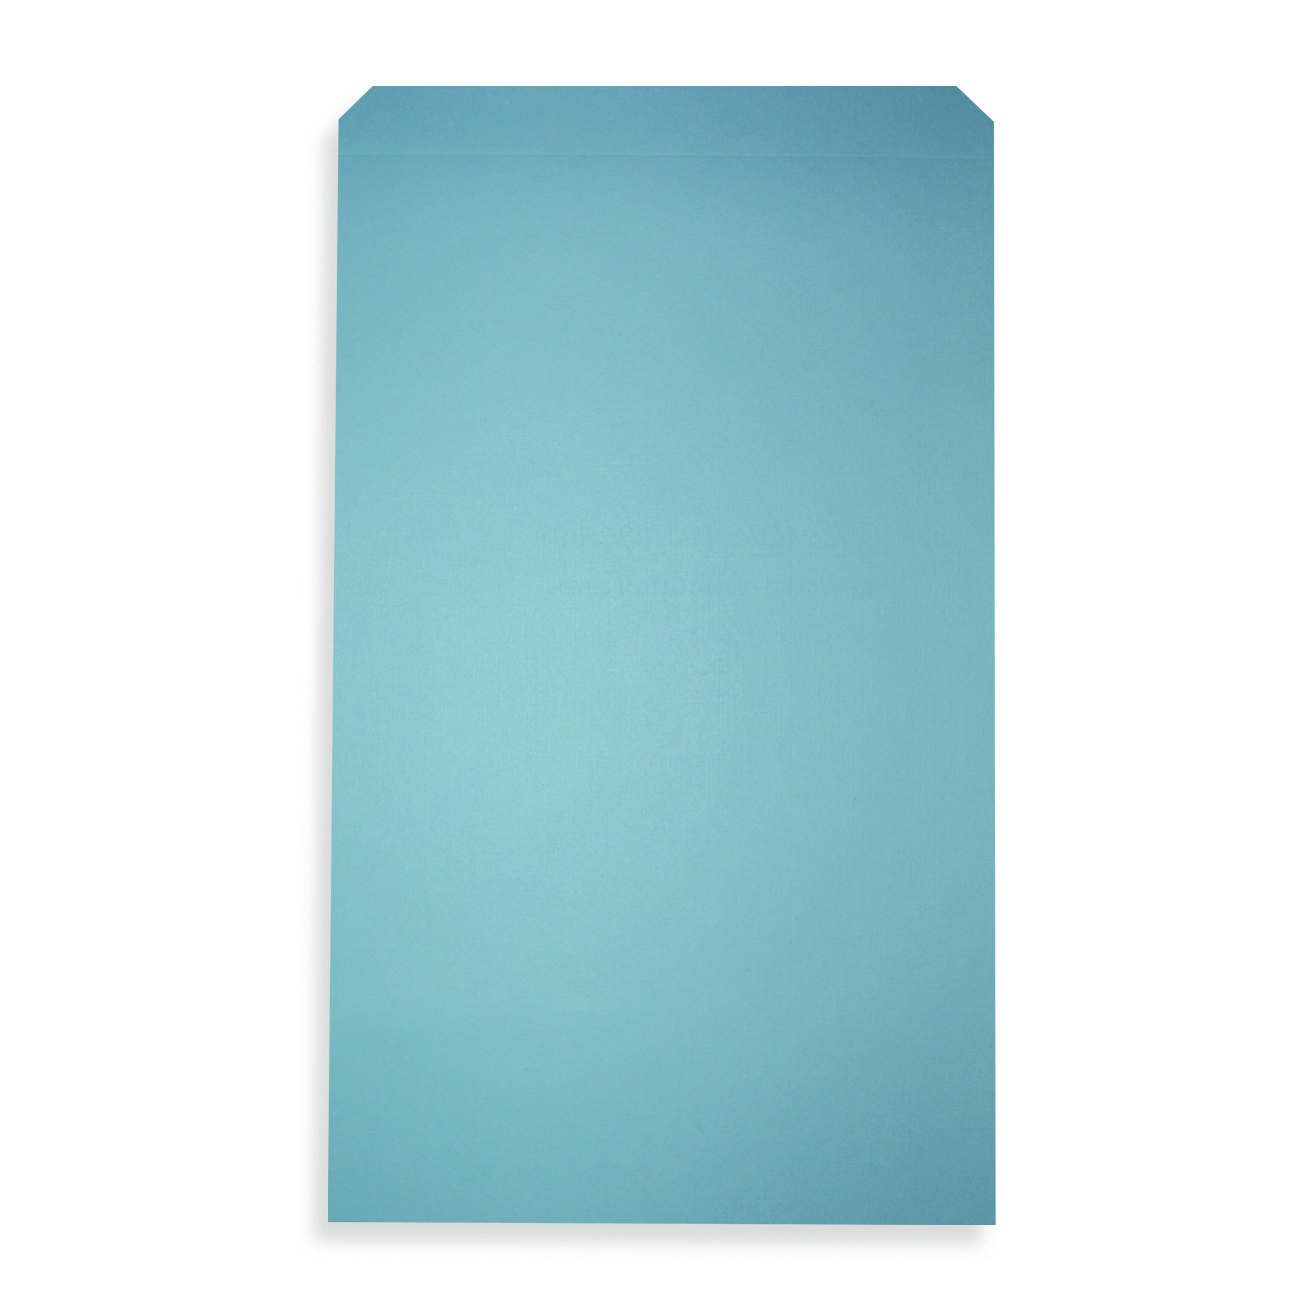 "Litigation Covers 9"" x 15 1/2"" Manuscript Cover, No Panel, 27 lb., Blue, Clipped Corners, 85% Recycled, 30% PCW, 100/PK"